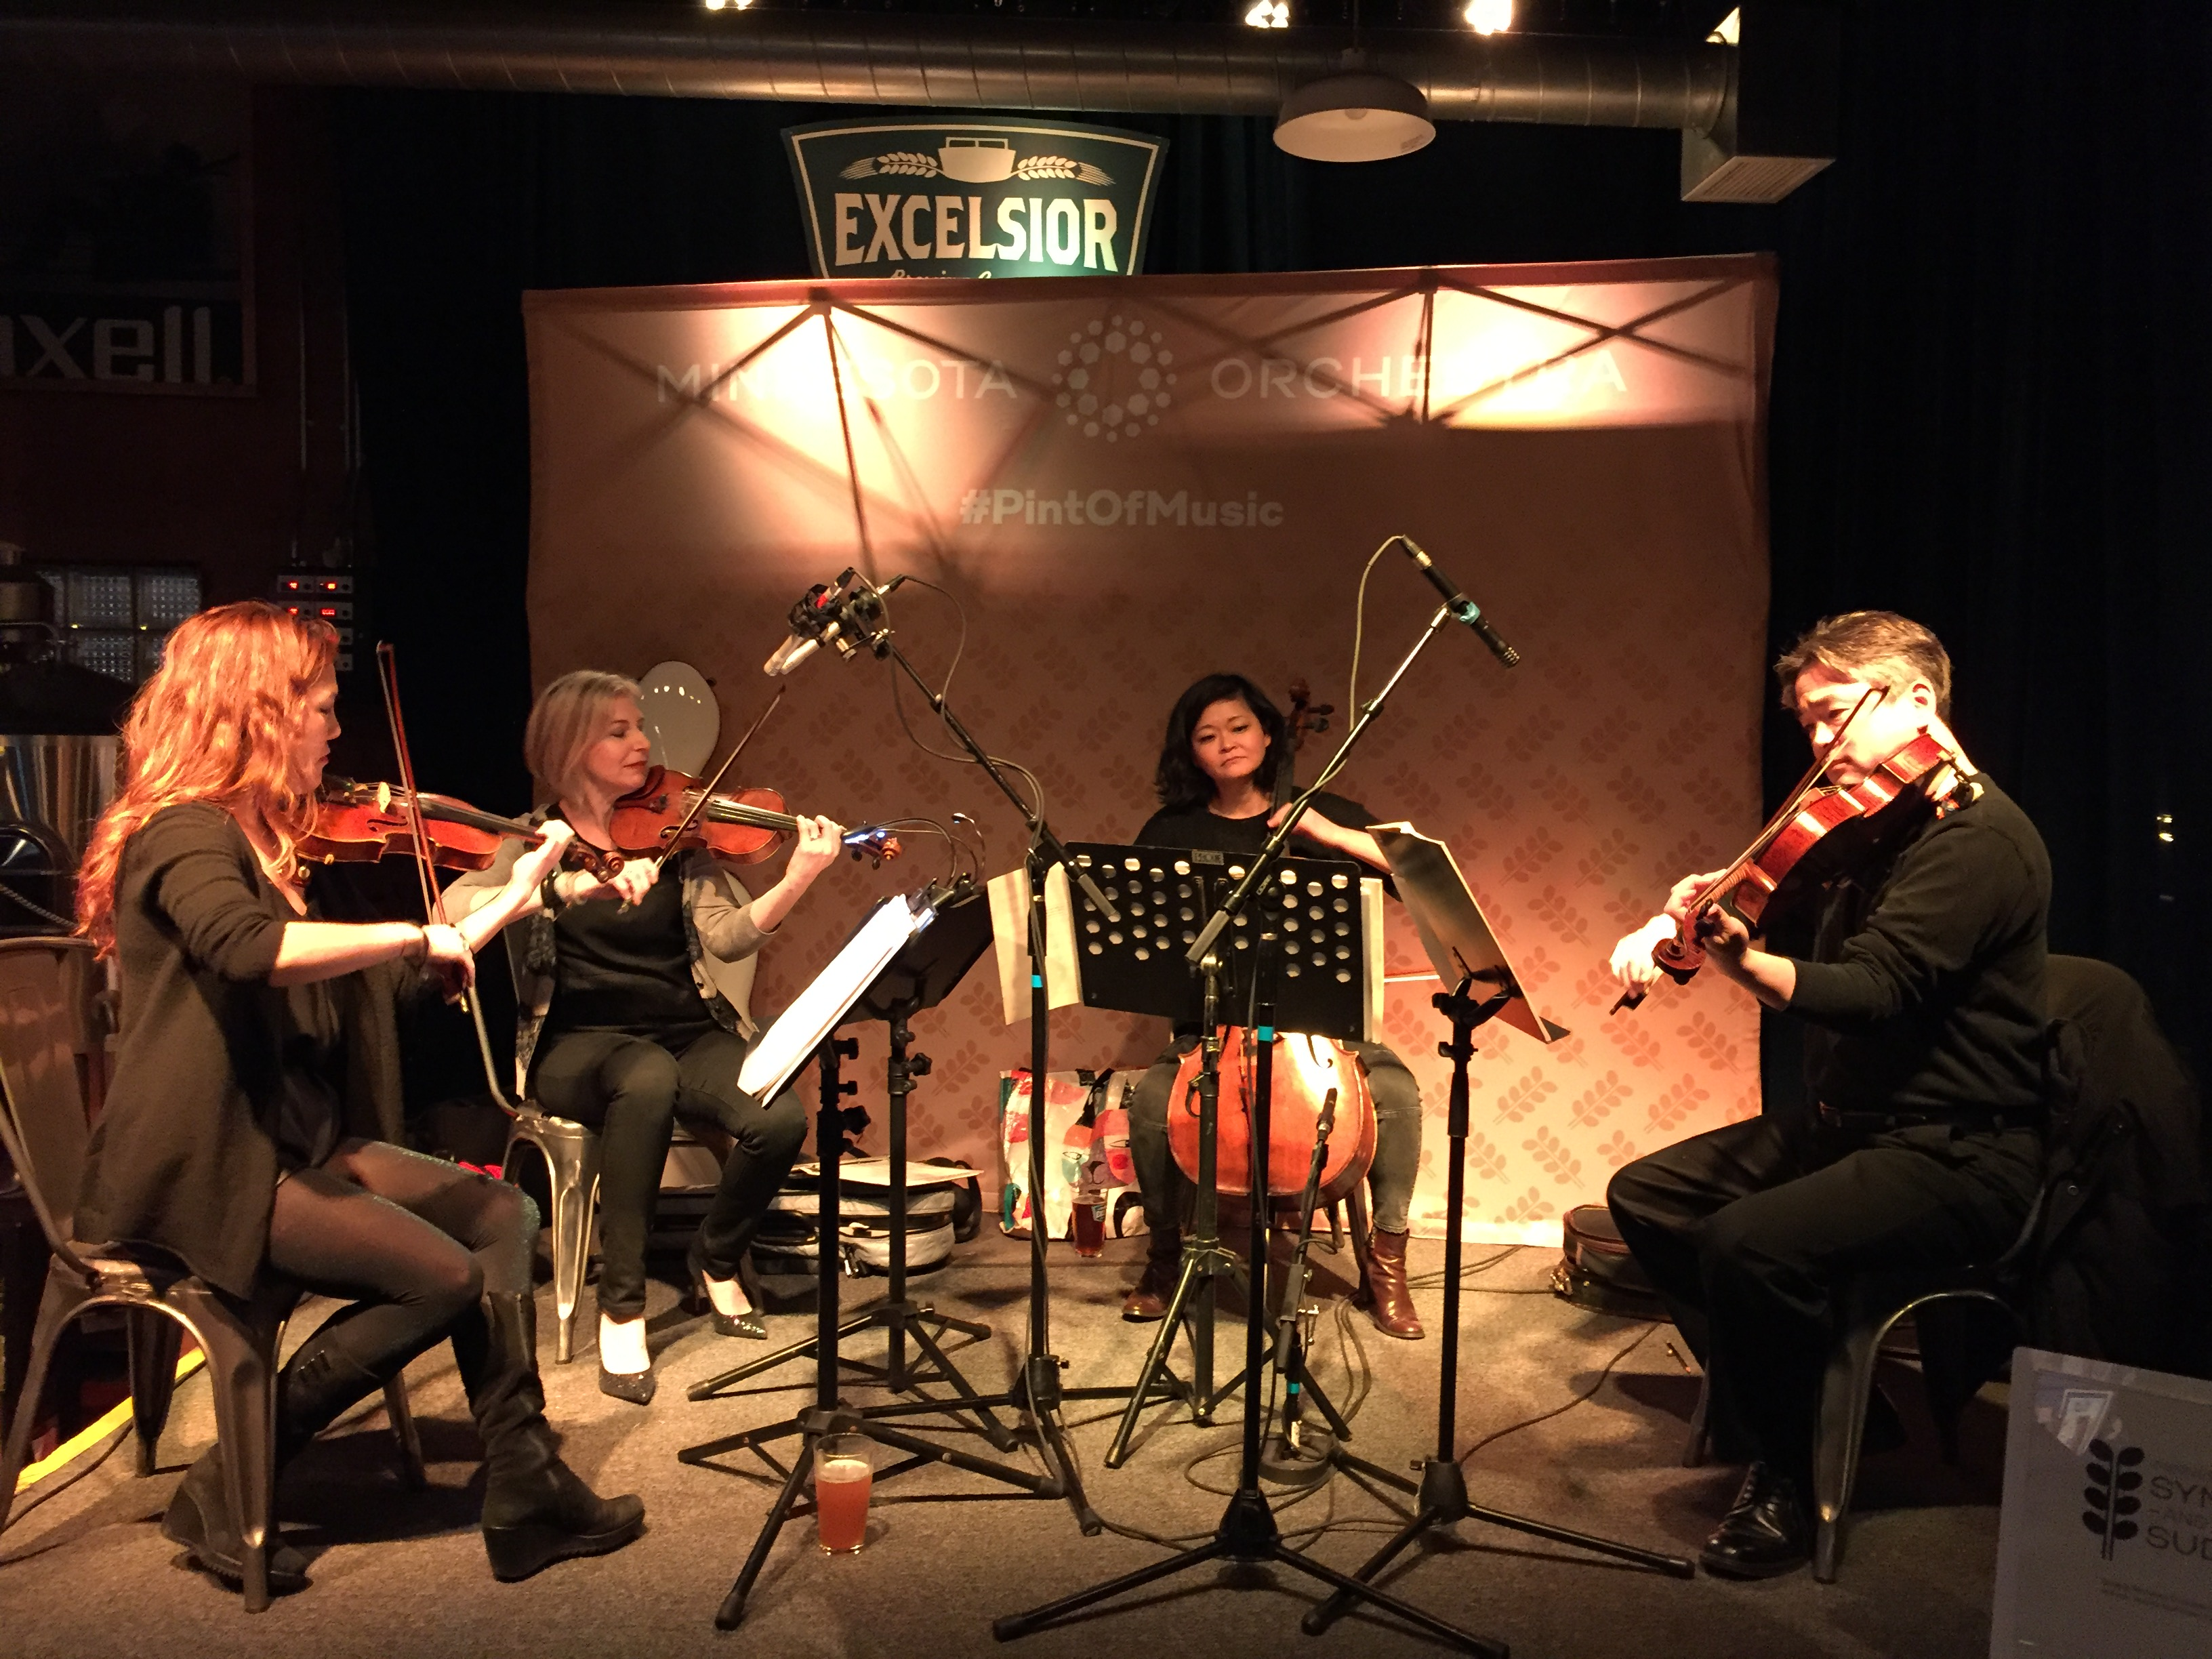 The string quartet performance at Excelsior Brewing Company on Saturday, January 30 // Photo courtesy Minnesota Orchestra